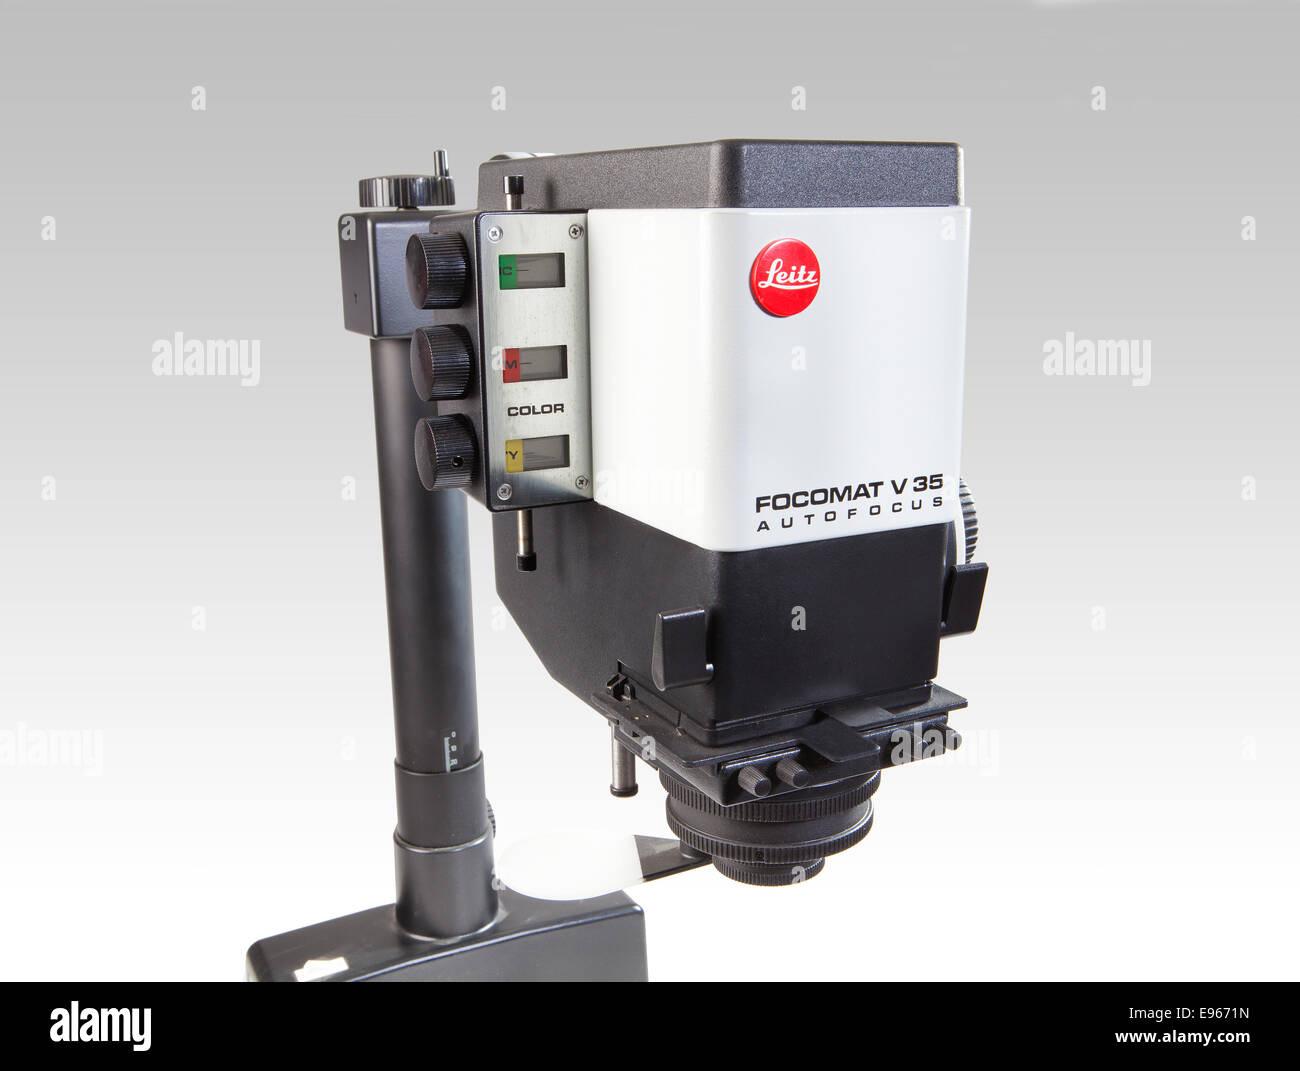 photographic enlarger Leica Focomat V-35 Enlarger, Leitz Focomat V 35 Autofocus - Stock Image